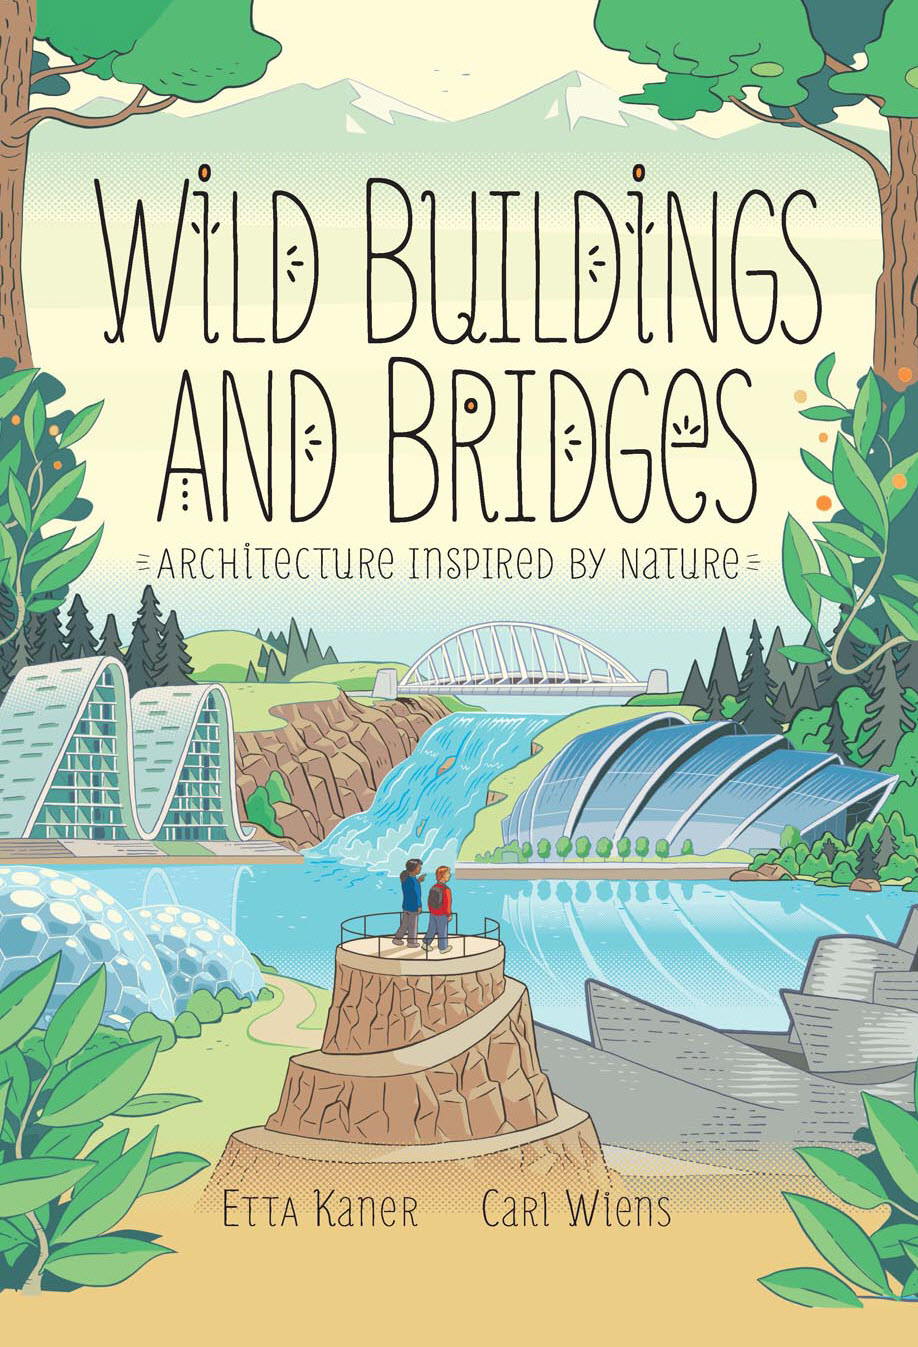 Wilding Building and Bridges. Cover illustration by Carl Wiens.